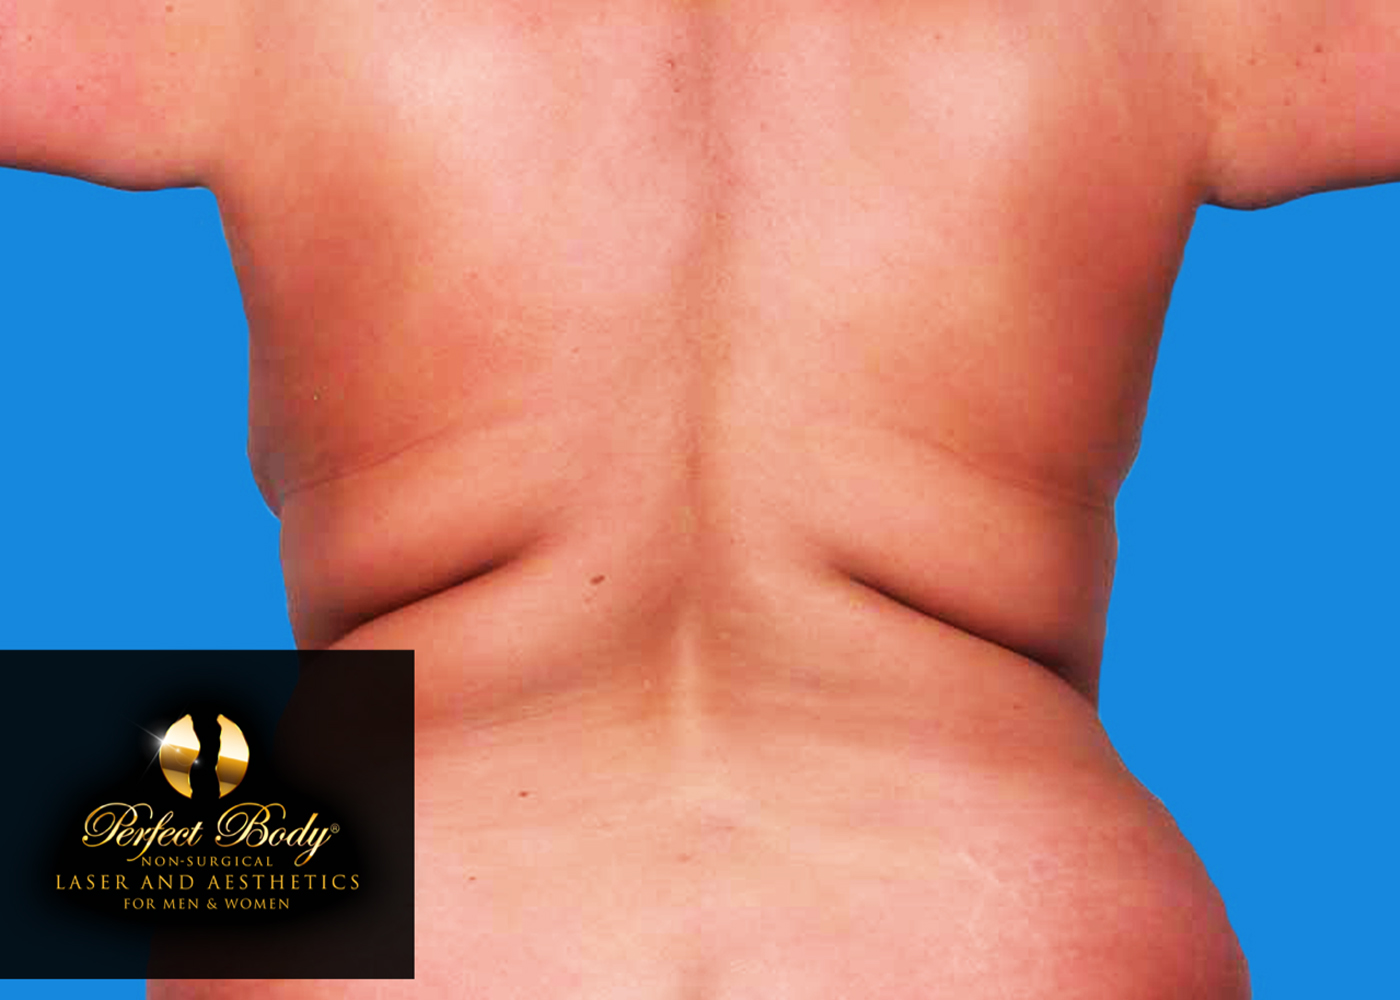 CoolSculpting laser fat removal for a Perfect Body!